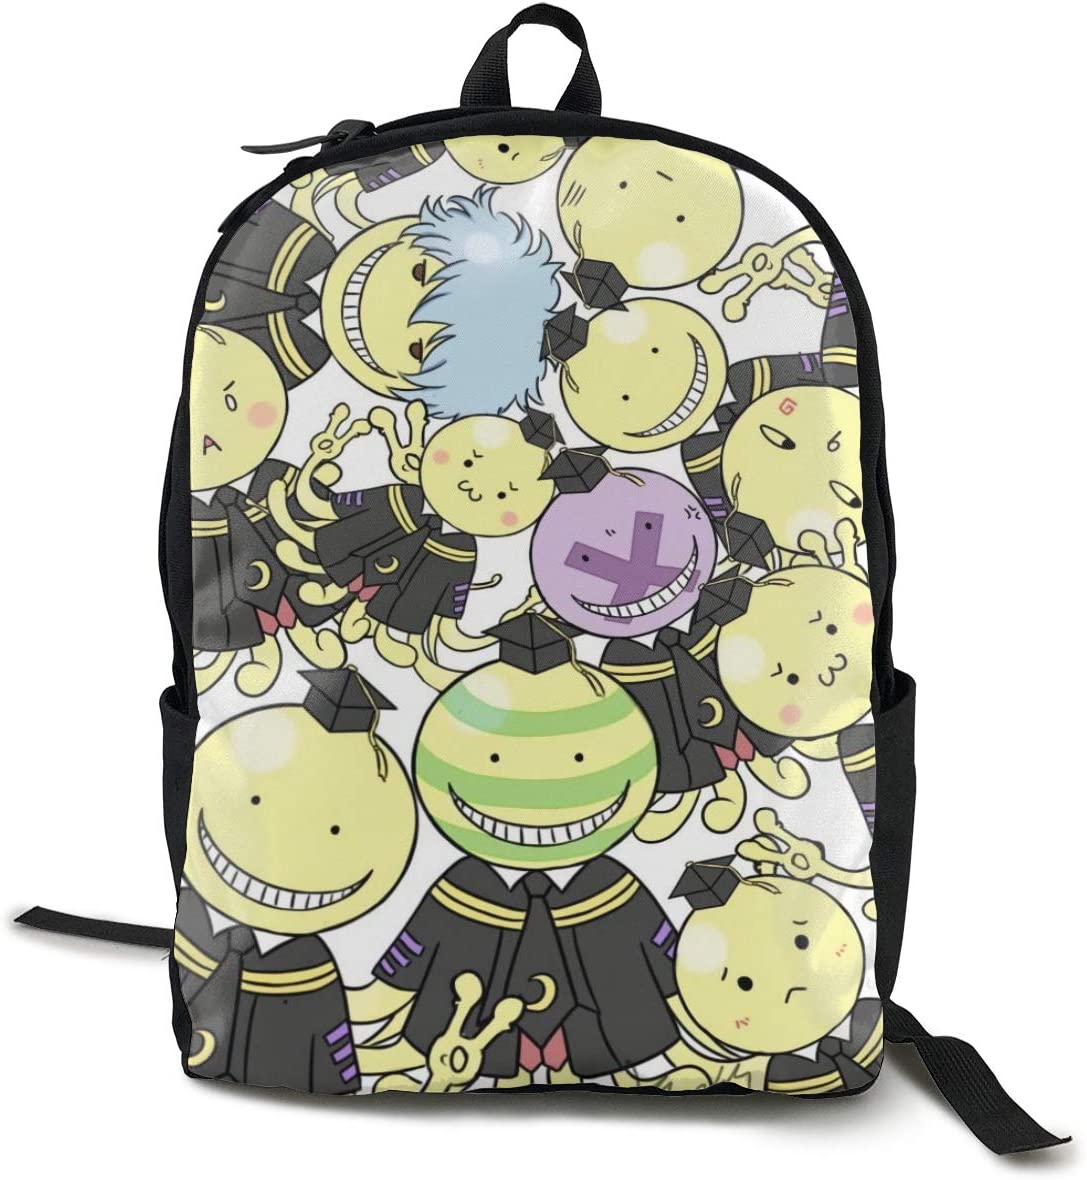 Assassination Classroom Canvas Unisex Unique Student Backpack Lightweight Travel Daypacks Laptop Backpack